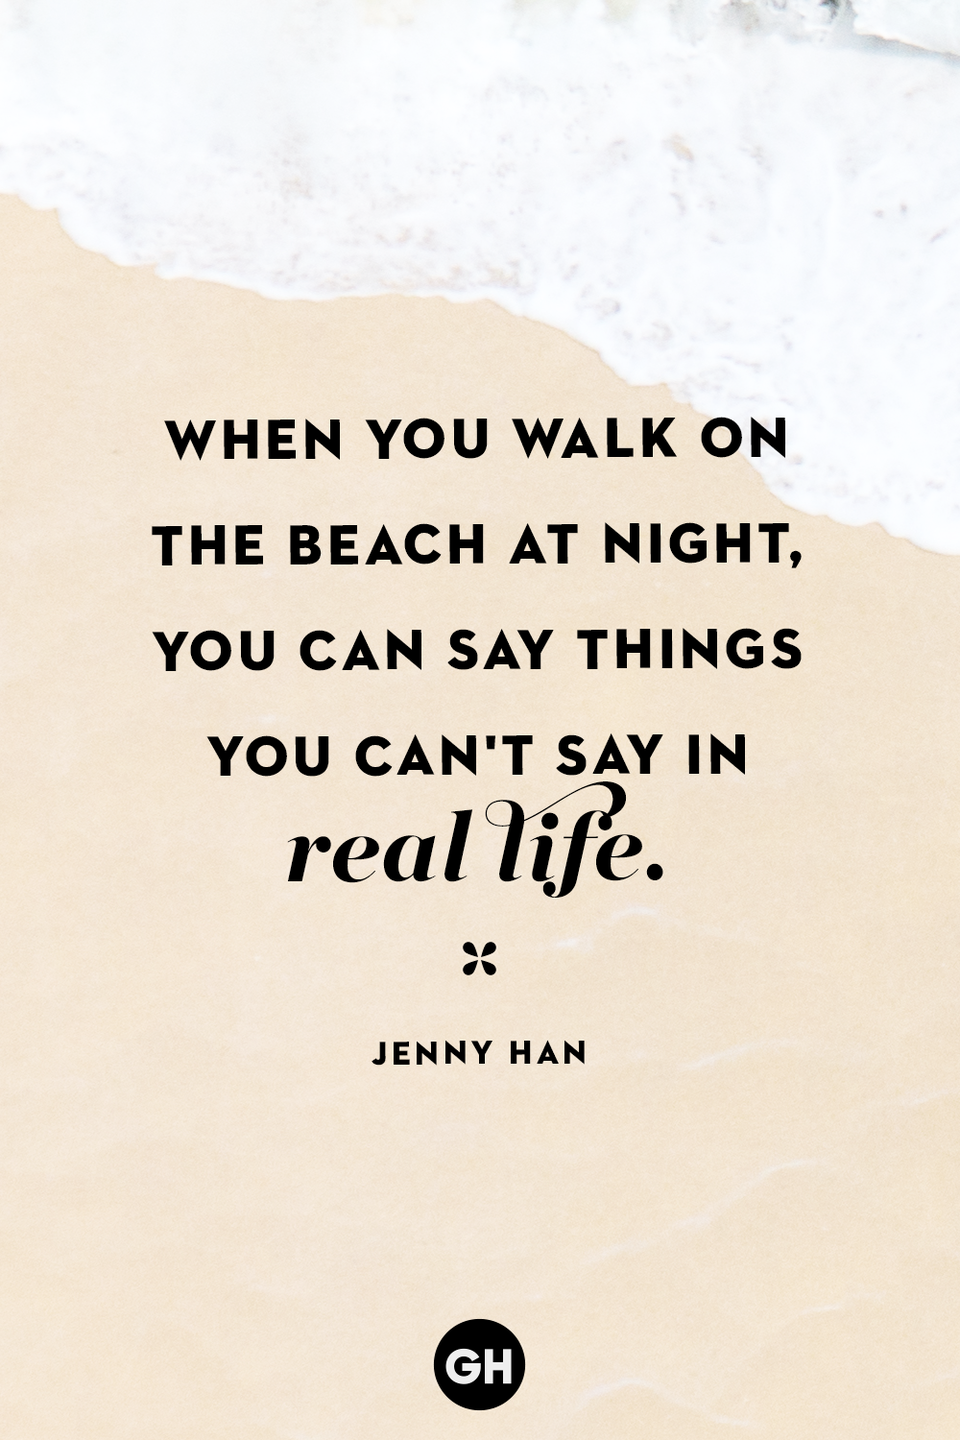 "<p>""When you walk on the beach at night, you can say things you can't say in real life.""</p>"